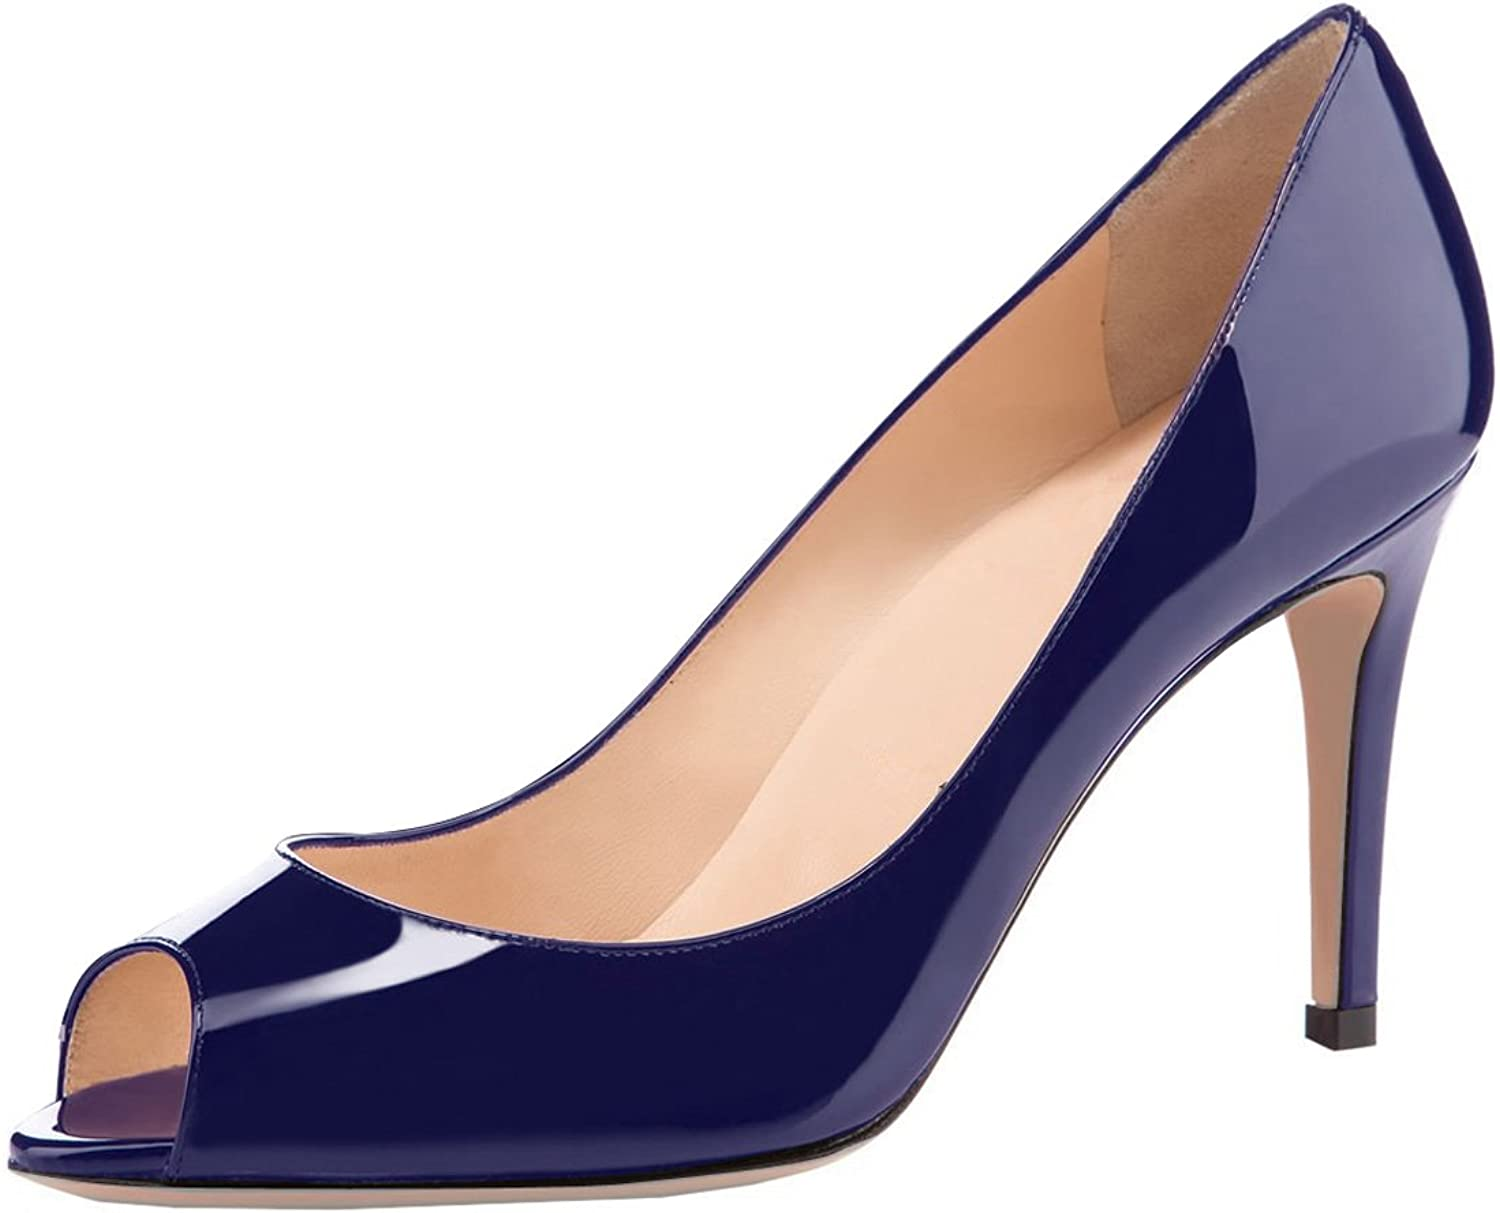 Eldof Women Peep Toe Pumps Mid-Heel Pumps Formal Wedding Bridal Classic Heel Open Toe Stiletto Navy US 7.5